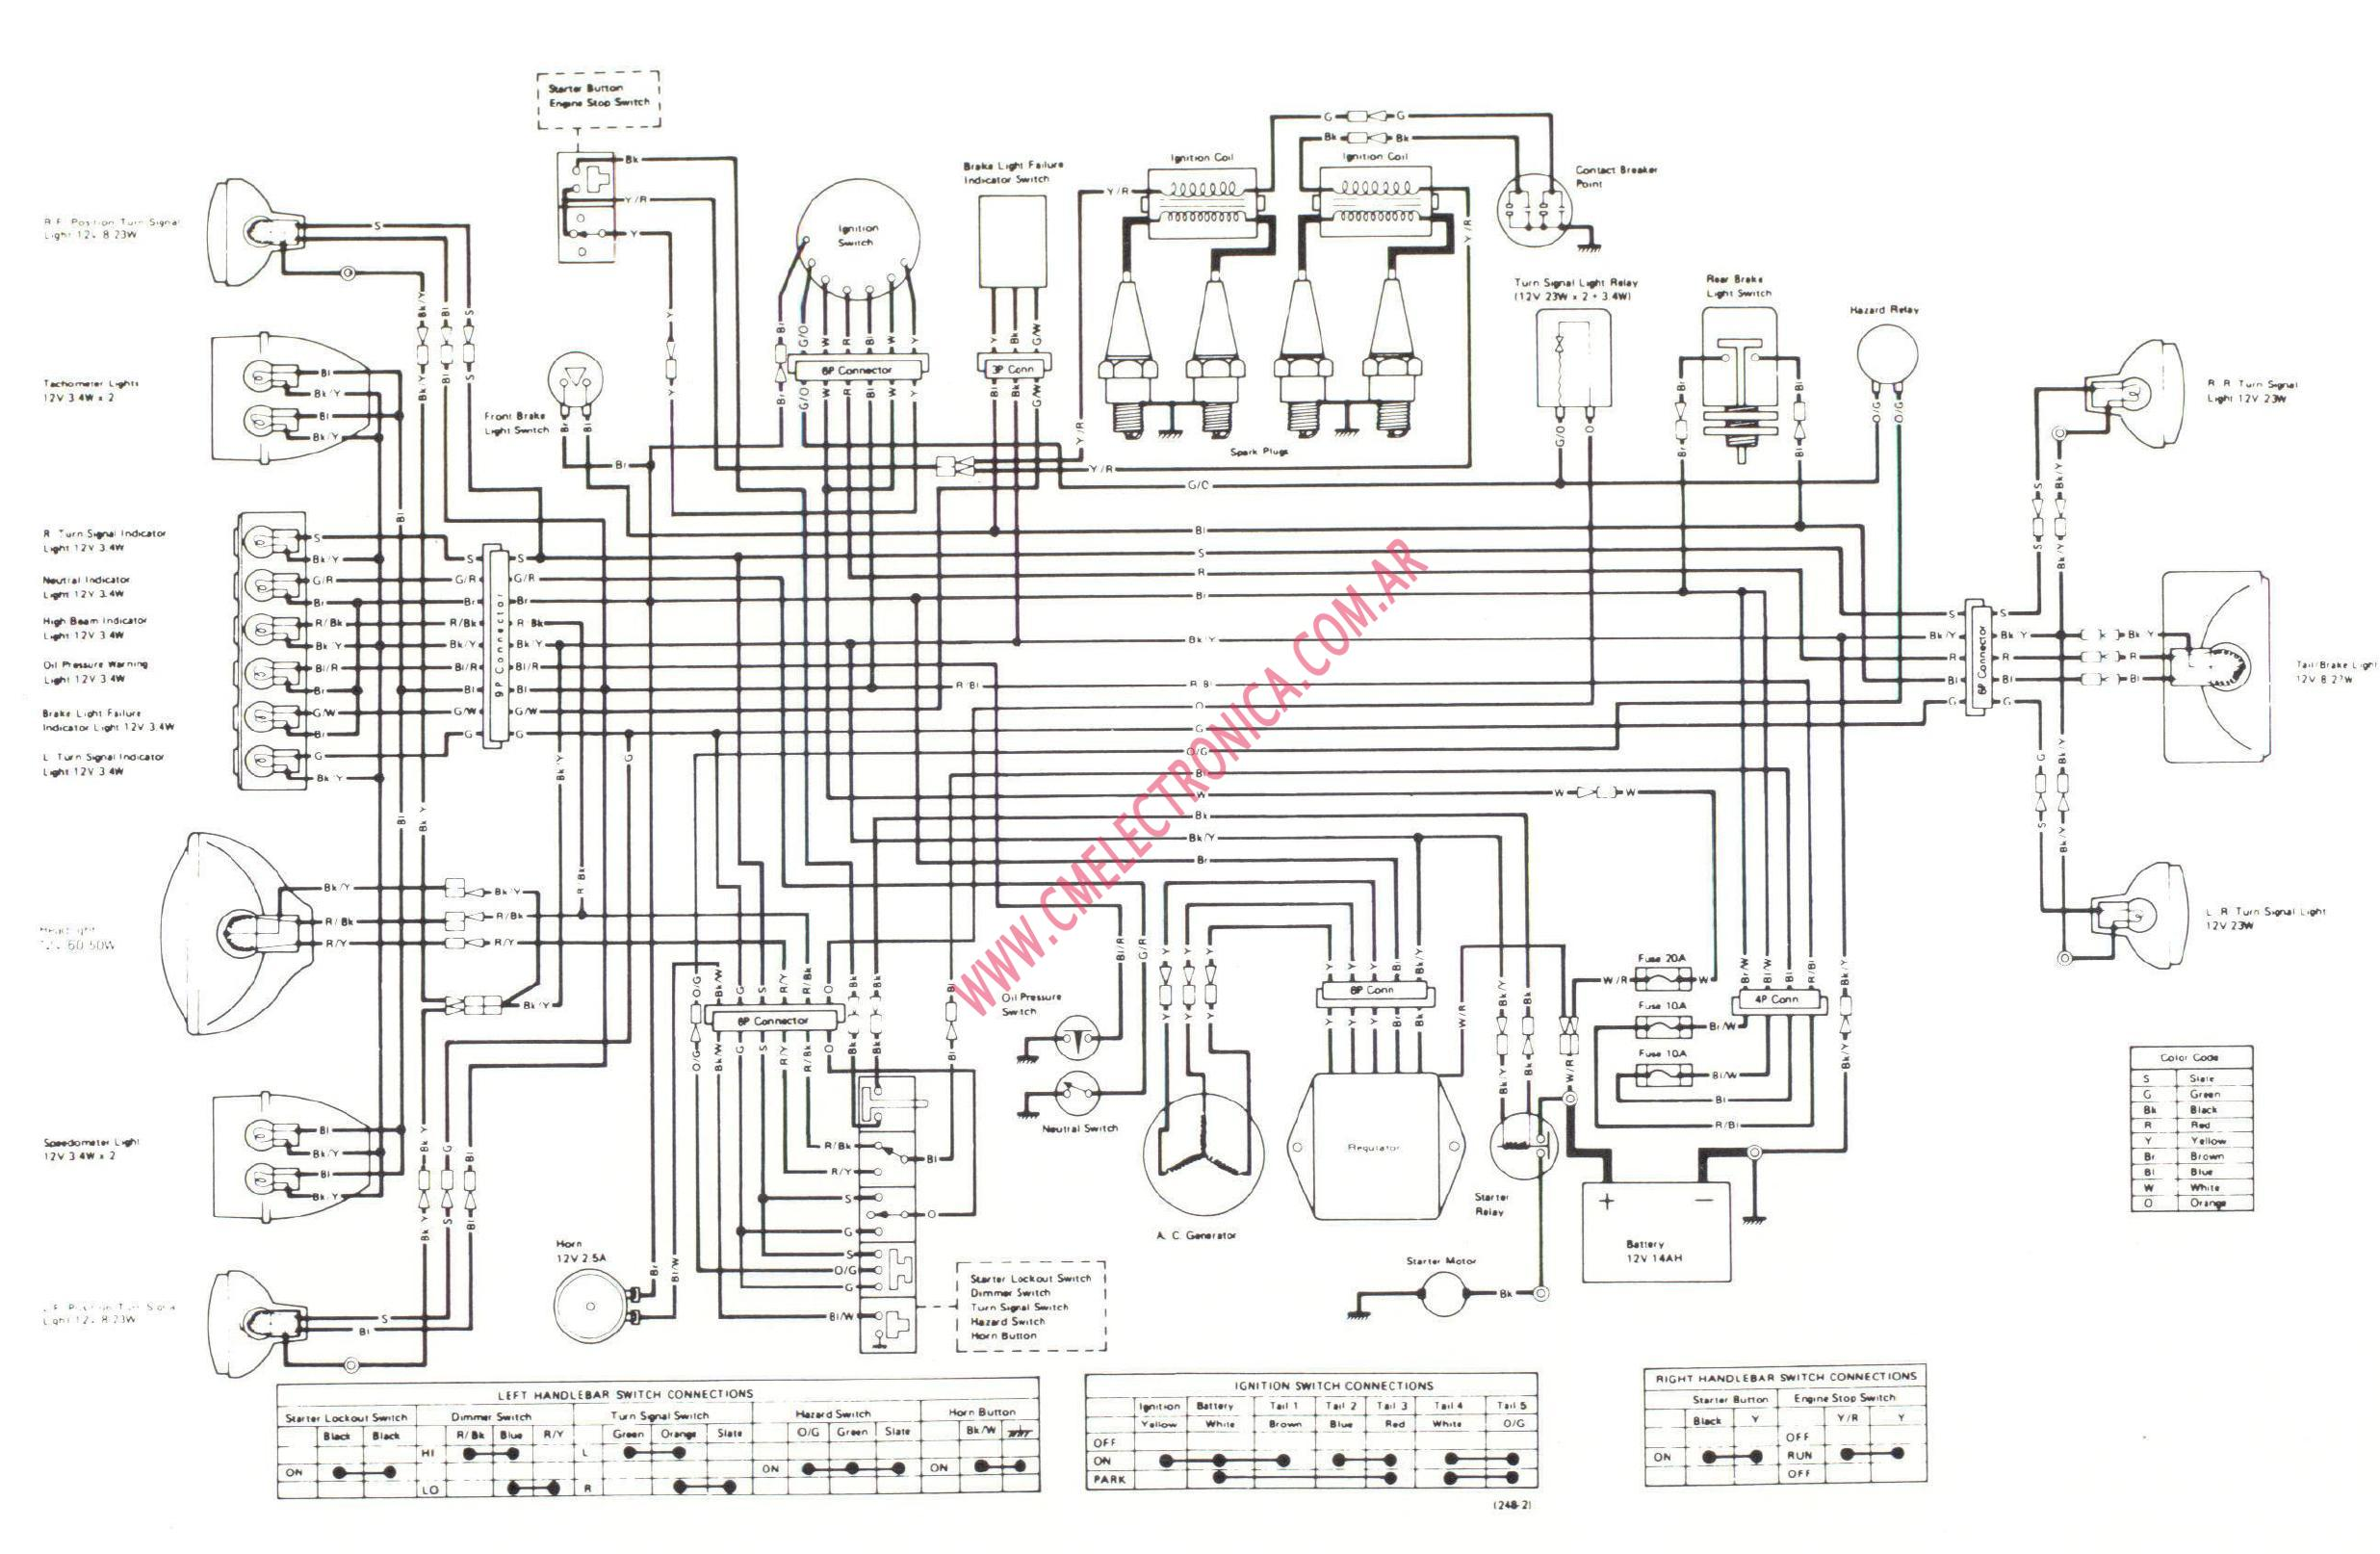 [DIAGRAM_38EU]  Ninja 250 Wiring Diagram - Ignition Switch Wiring Diagram On Polaris for Wiring  Diagram Schematics | Ninja 250 Wiring Diagram |  | Wiring Diagram Schematics